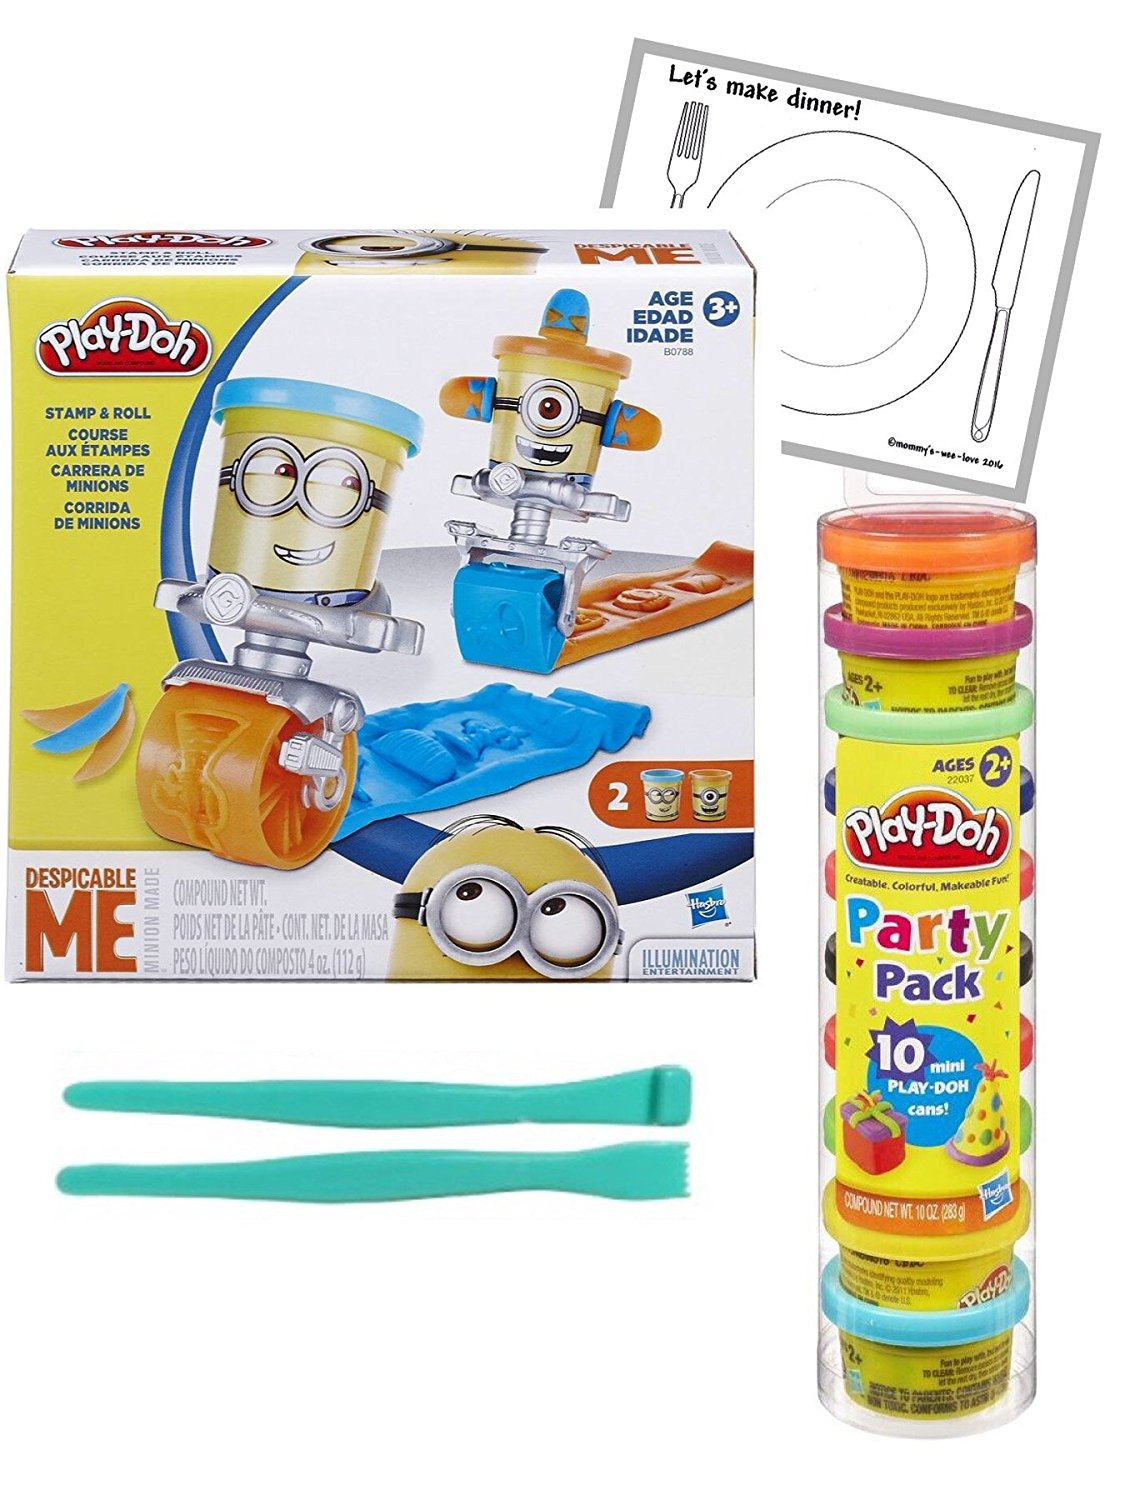 Play-Doh Featuring Despicable Me Minions Stamp and Roll Set & Play-Doh Party Pack Tube Bundle Set ~ Bonus 2pc Modelling tools & Laminated Playmat